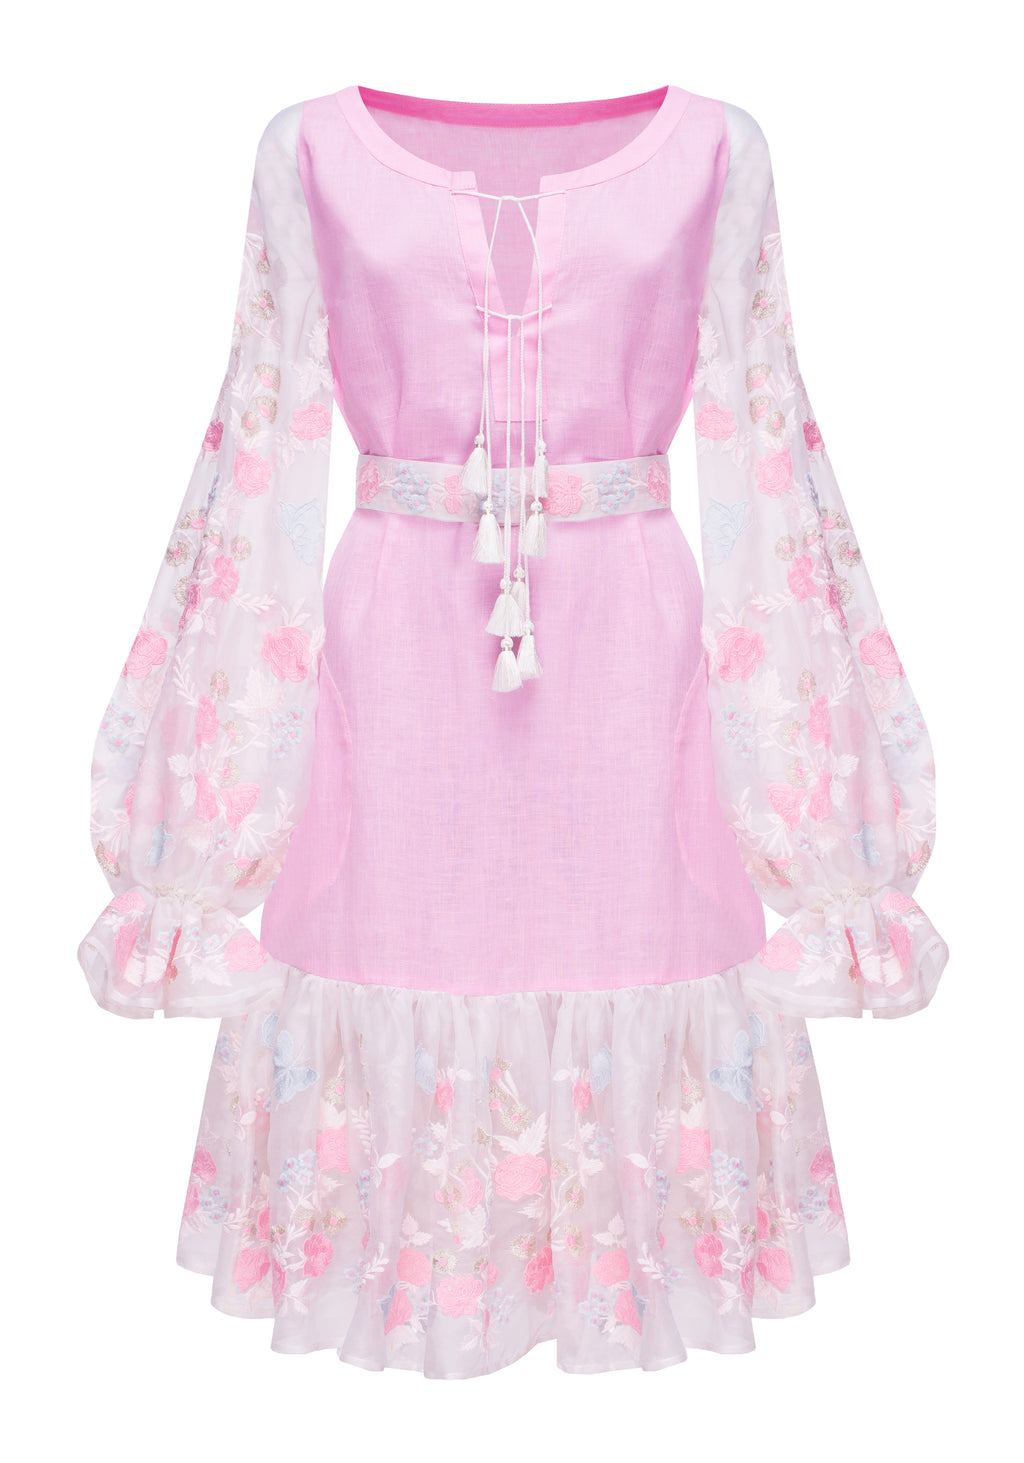 SILK ROSE mini dress in pink